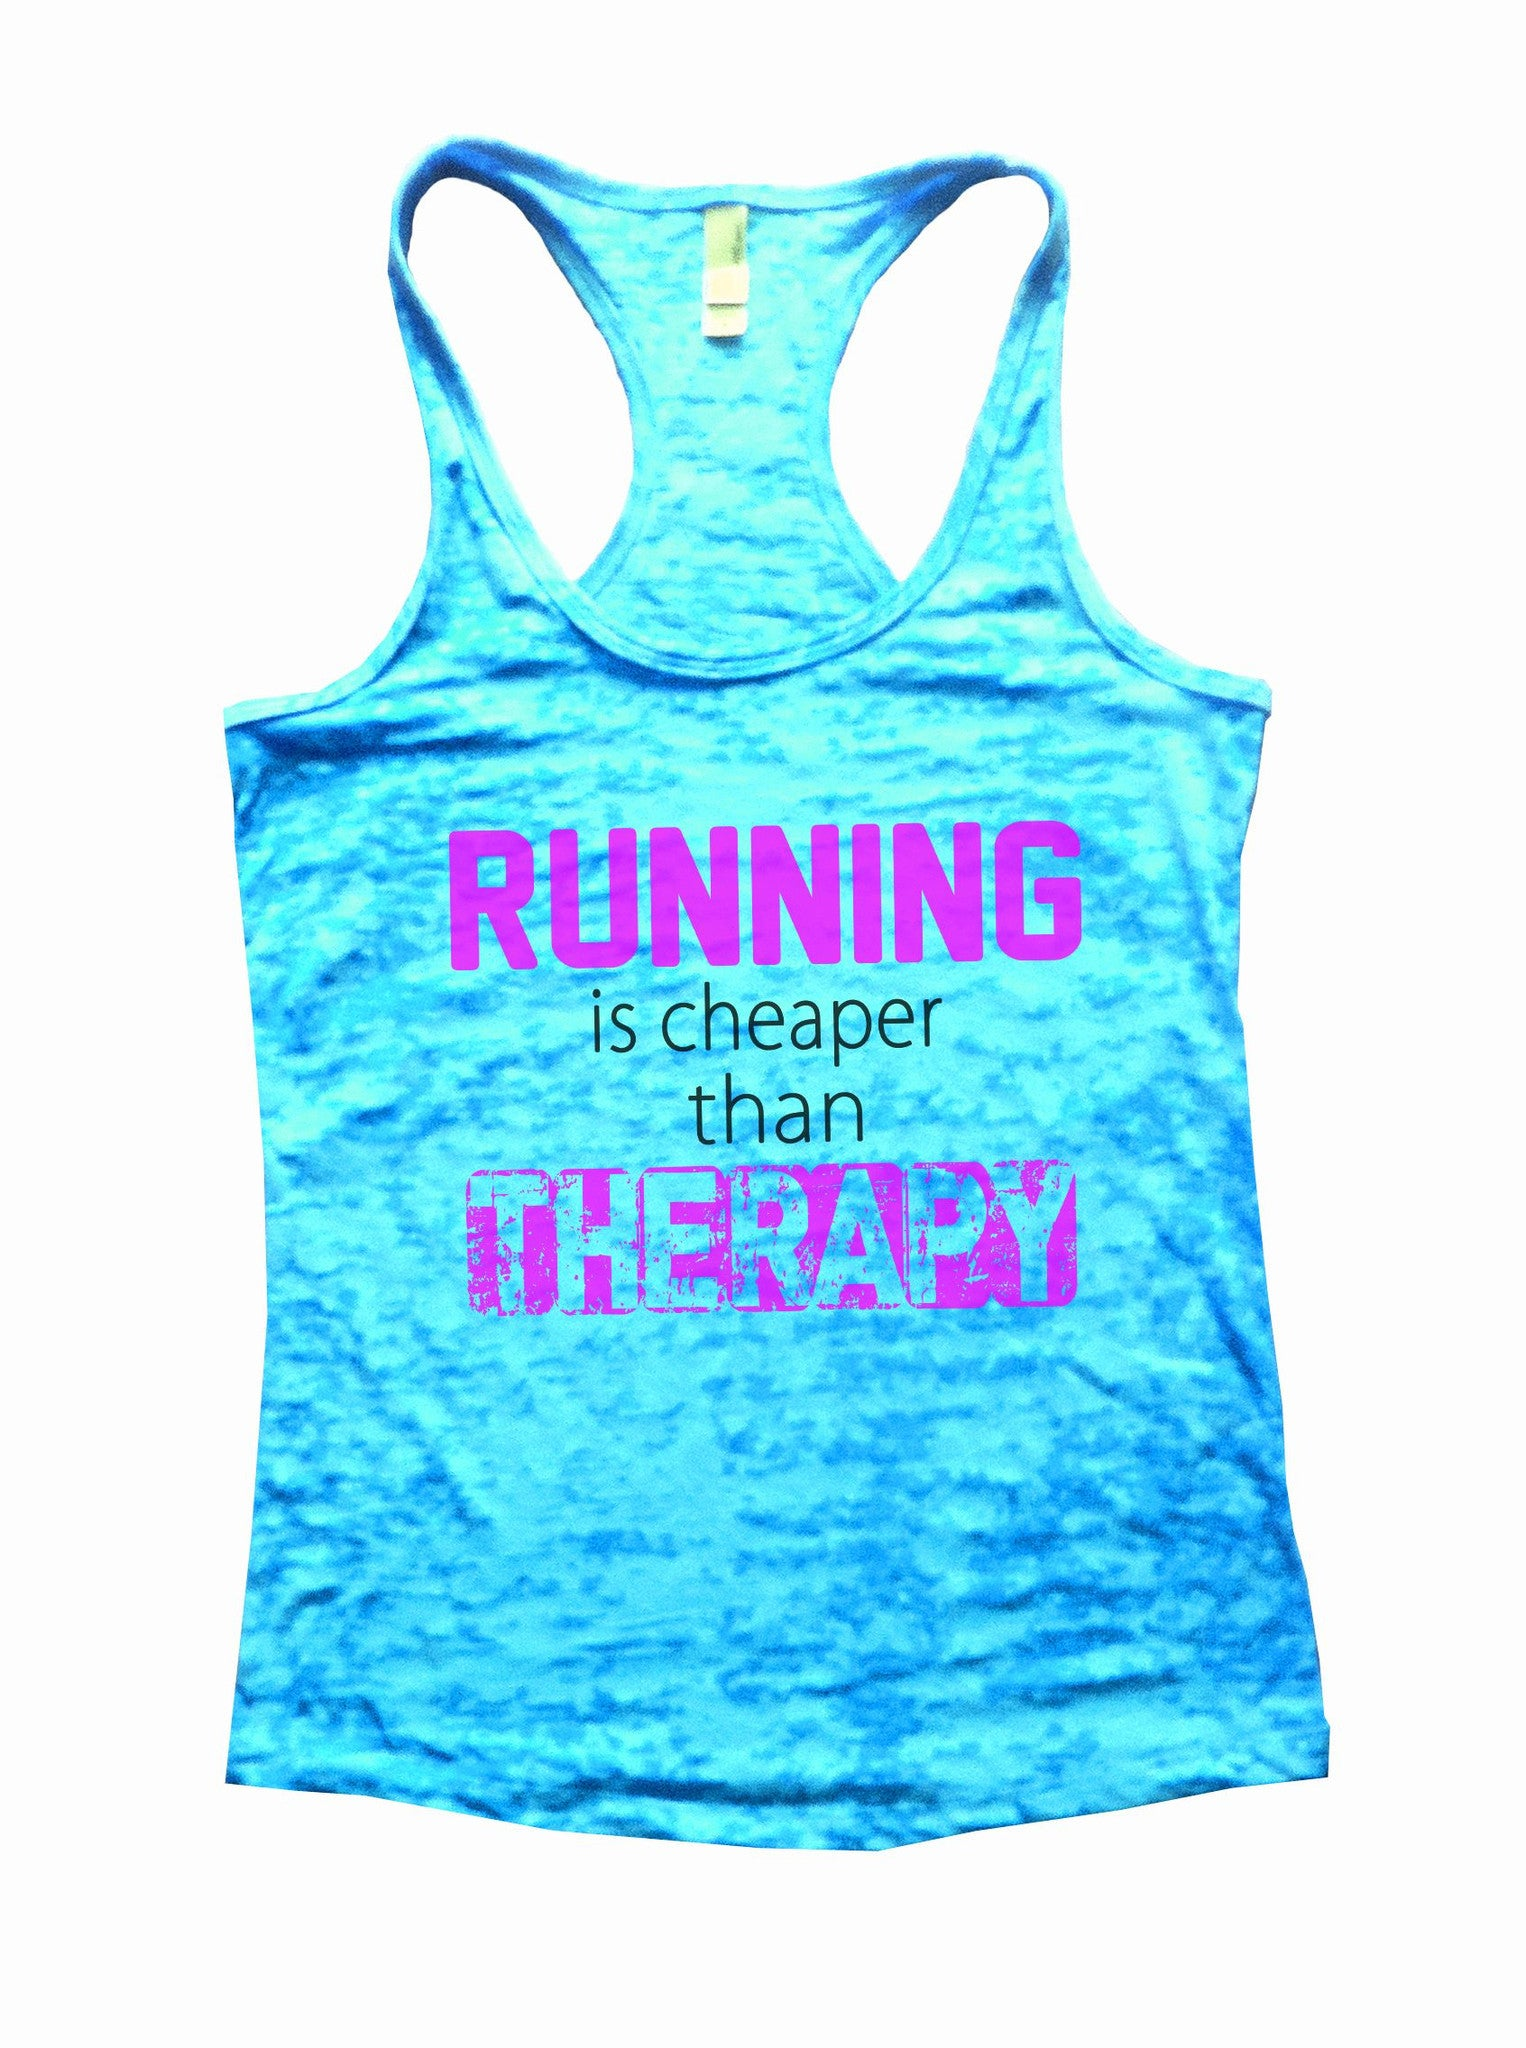 Running Is Cheaper Than Therapy Burnout Tank Top By BurnoutTankTops.com - 674 - Funny Shirts Tank Tops Burnouts and Triblends  - 4